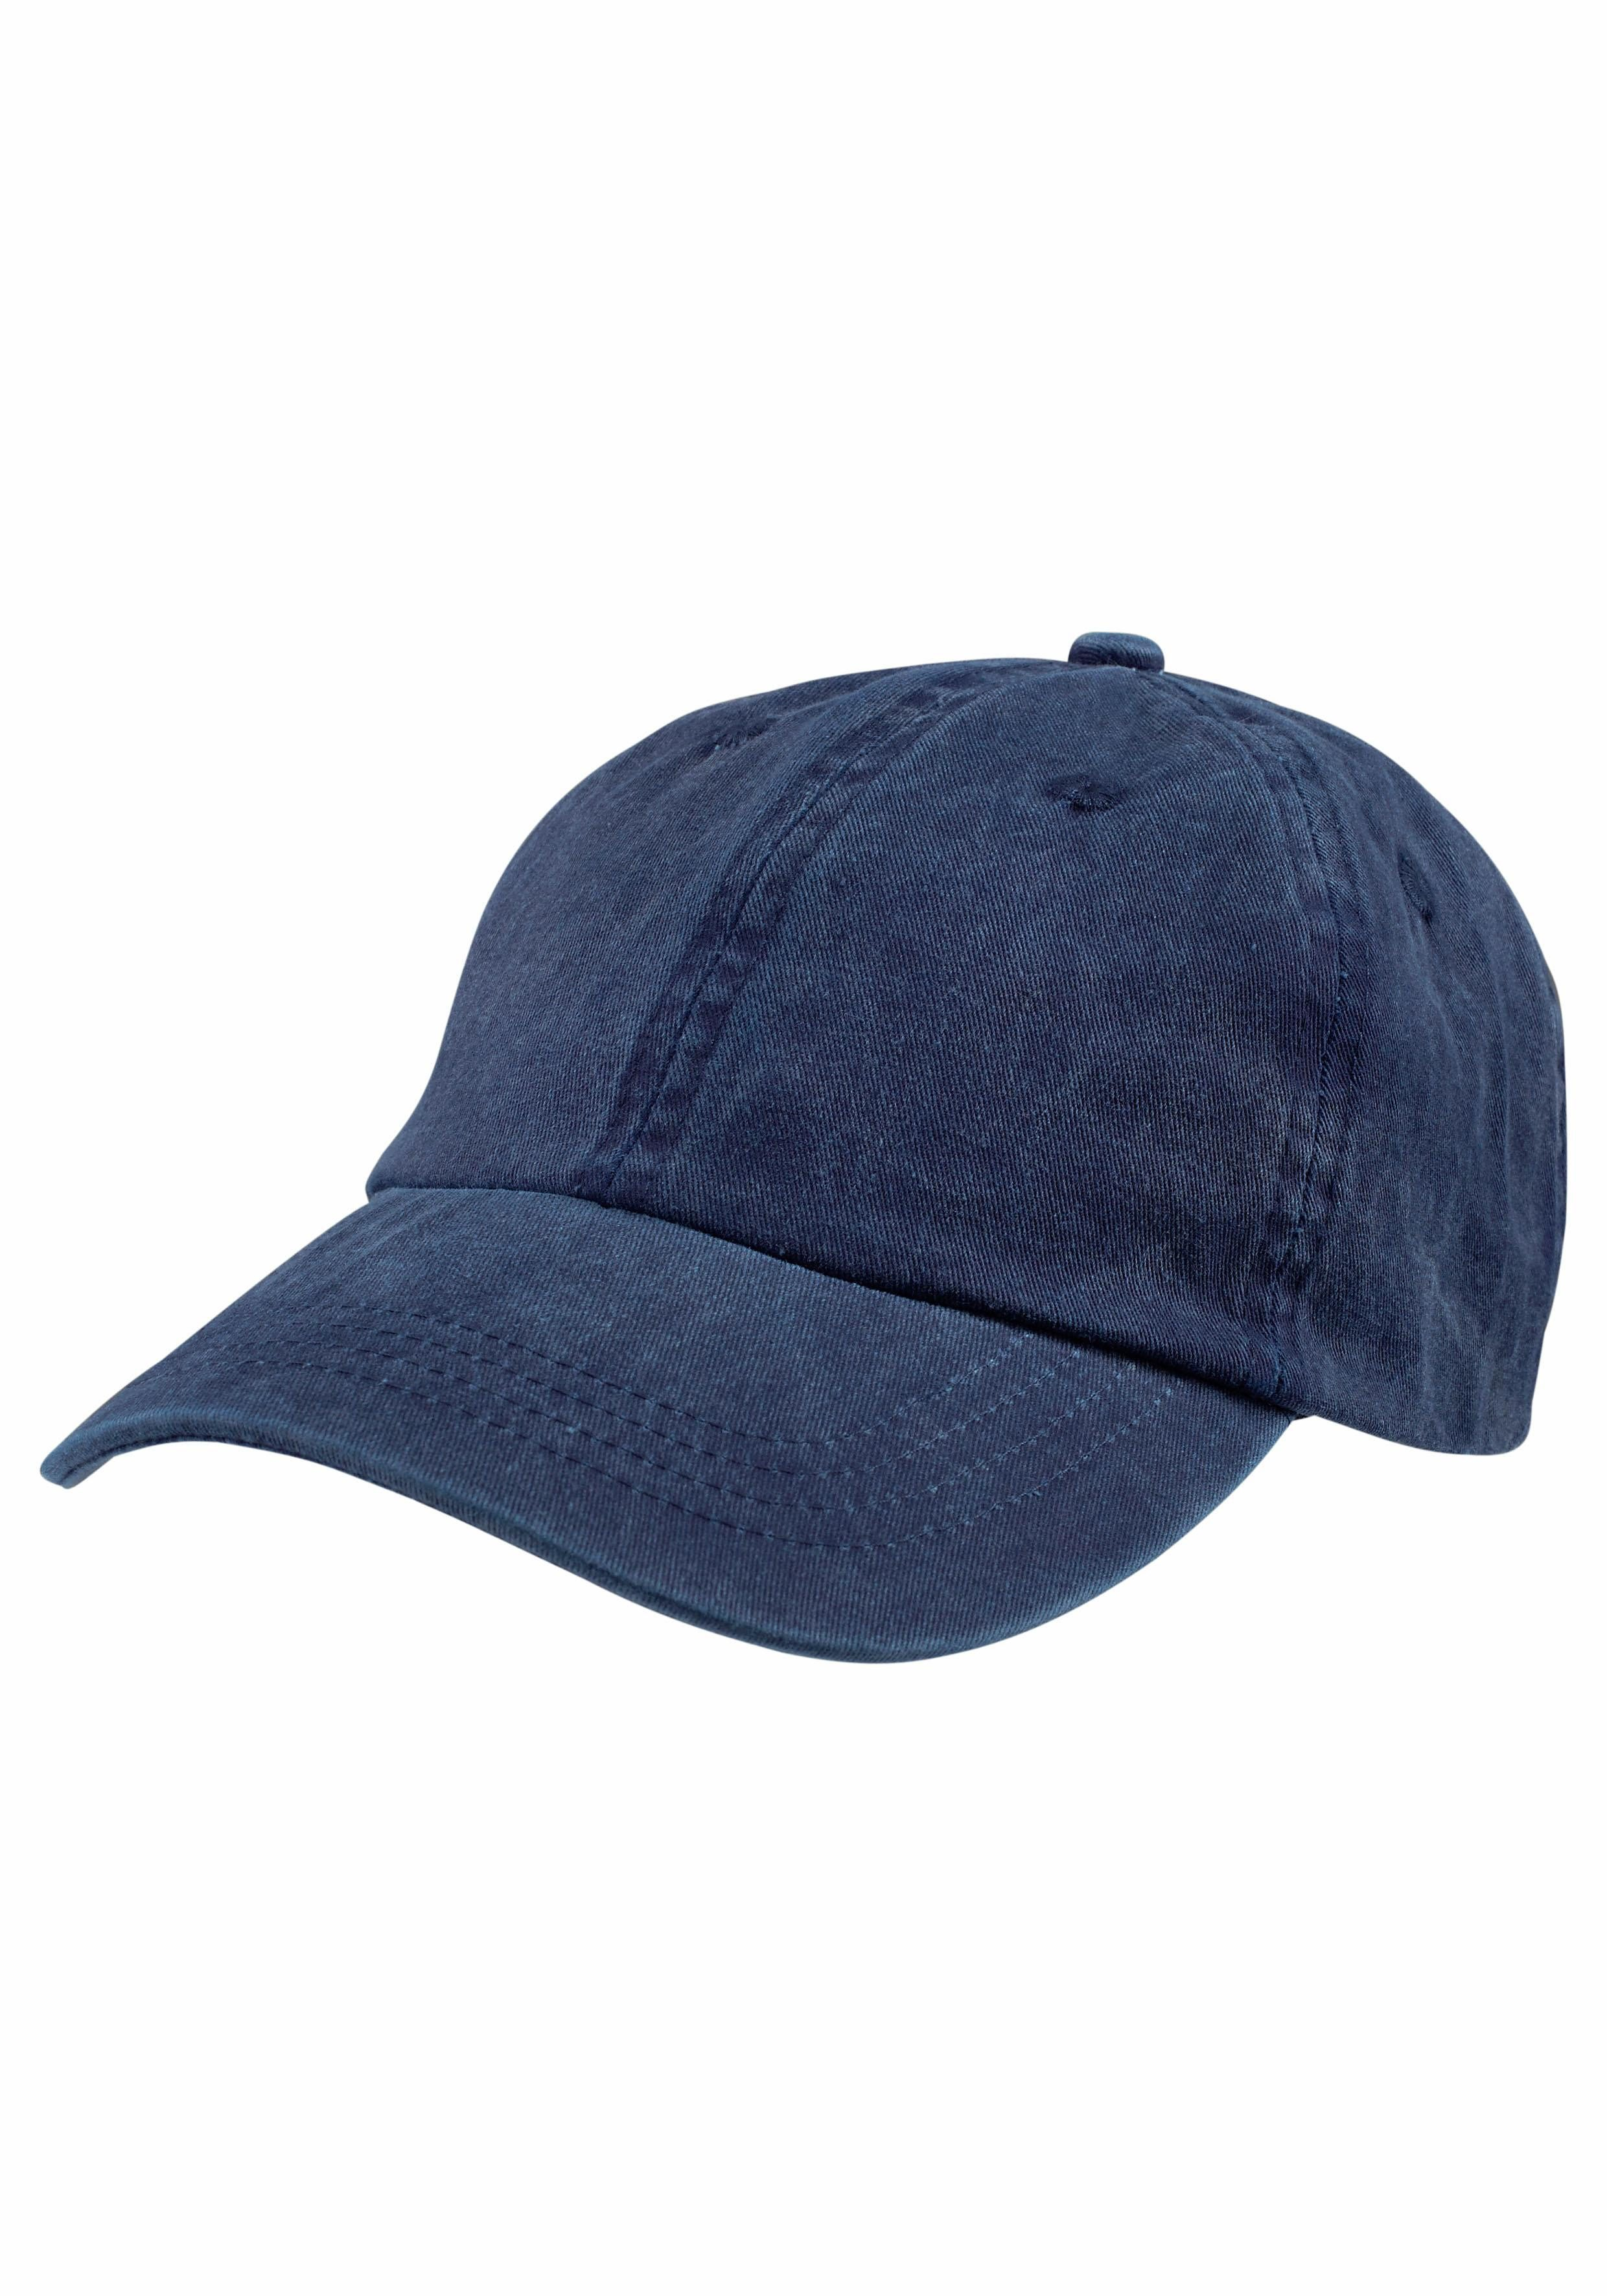 J. Jayz Baseball Cap im modischen Denim-Look